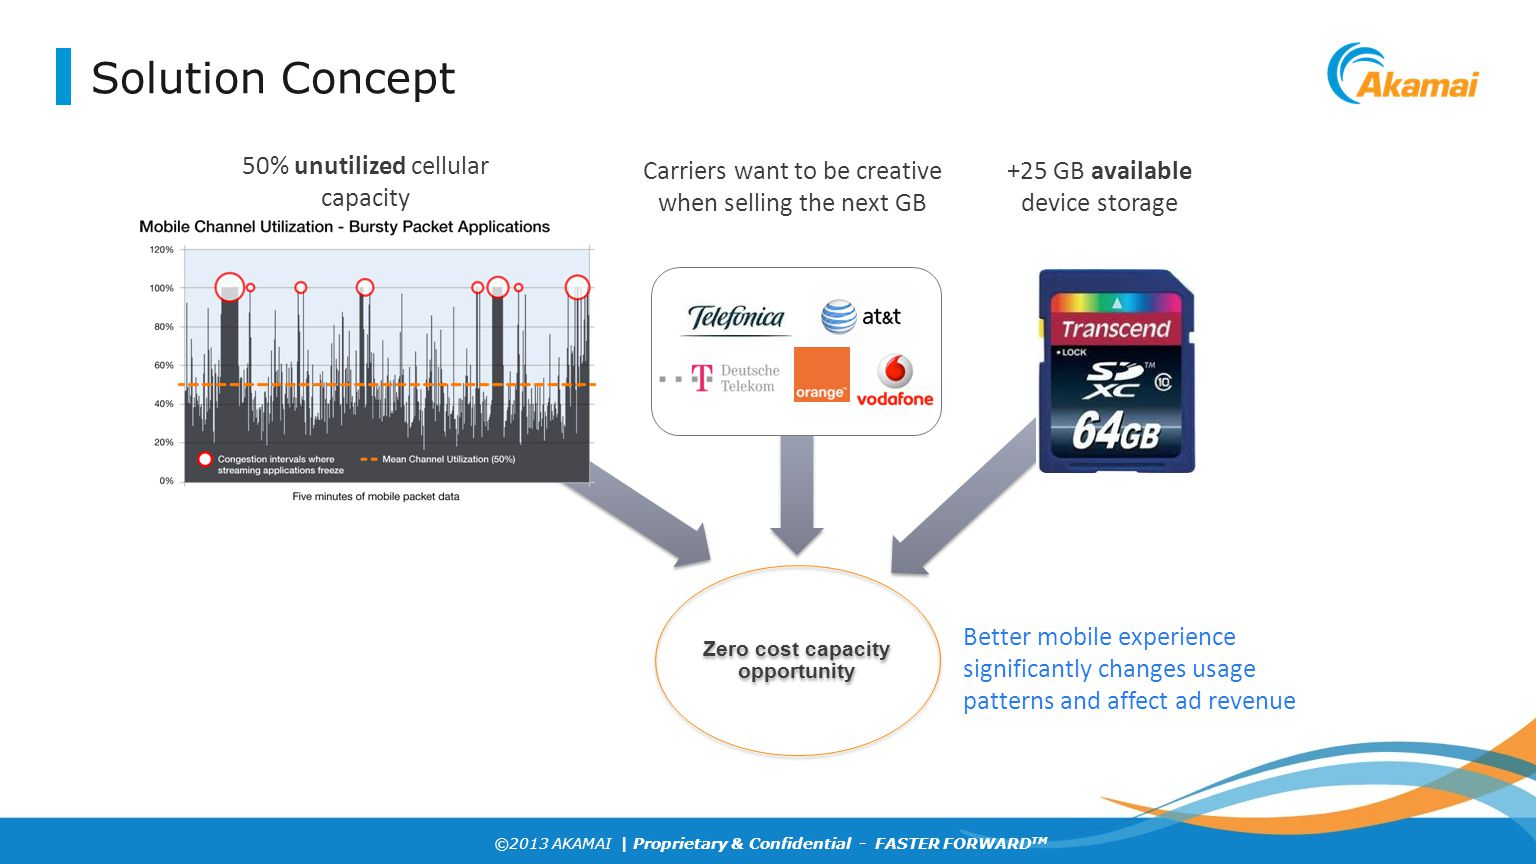 ©2013 AKAMAI | Proprietary & Confidential - FASTER FORWARD TM Solution Concept Better mobile experience significantly changes usage patterns and affec